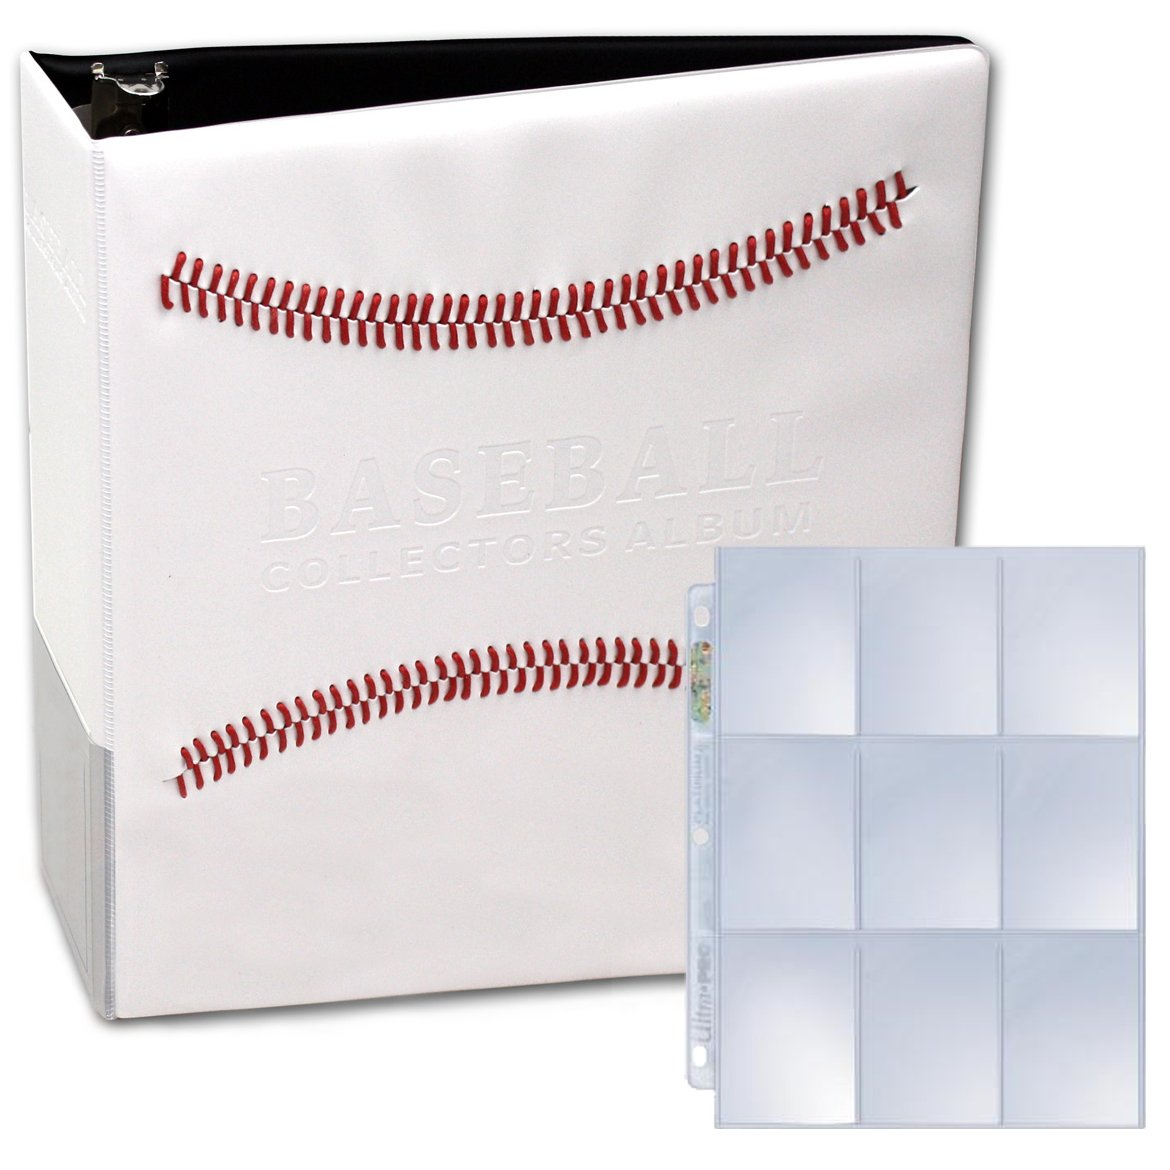 White Stitched Baseball Card Collectors Album with 25 Premium Ultra Pro 9 Pocket Pages Included (3'' D-Ring Binder w/25 Pages) by ACS Pacific Supply